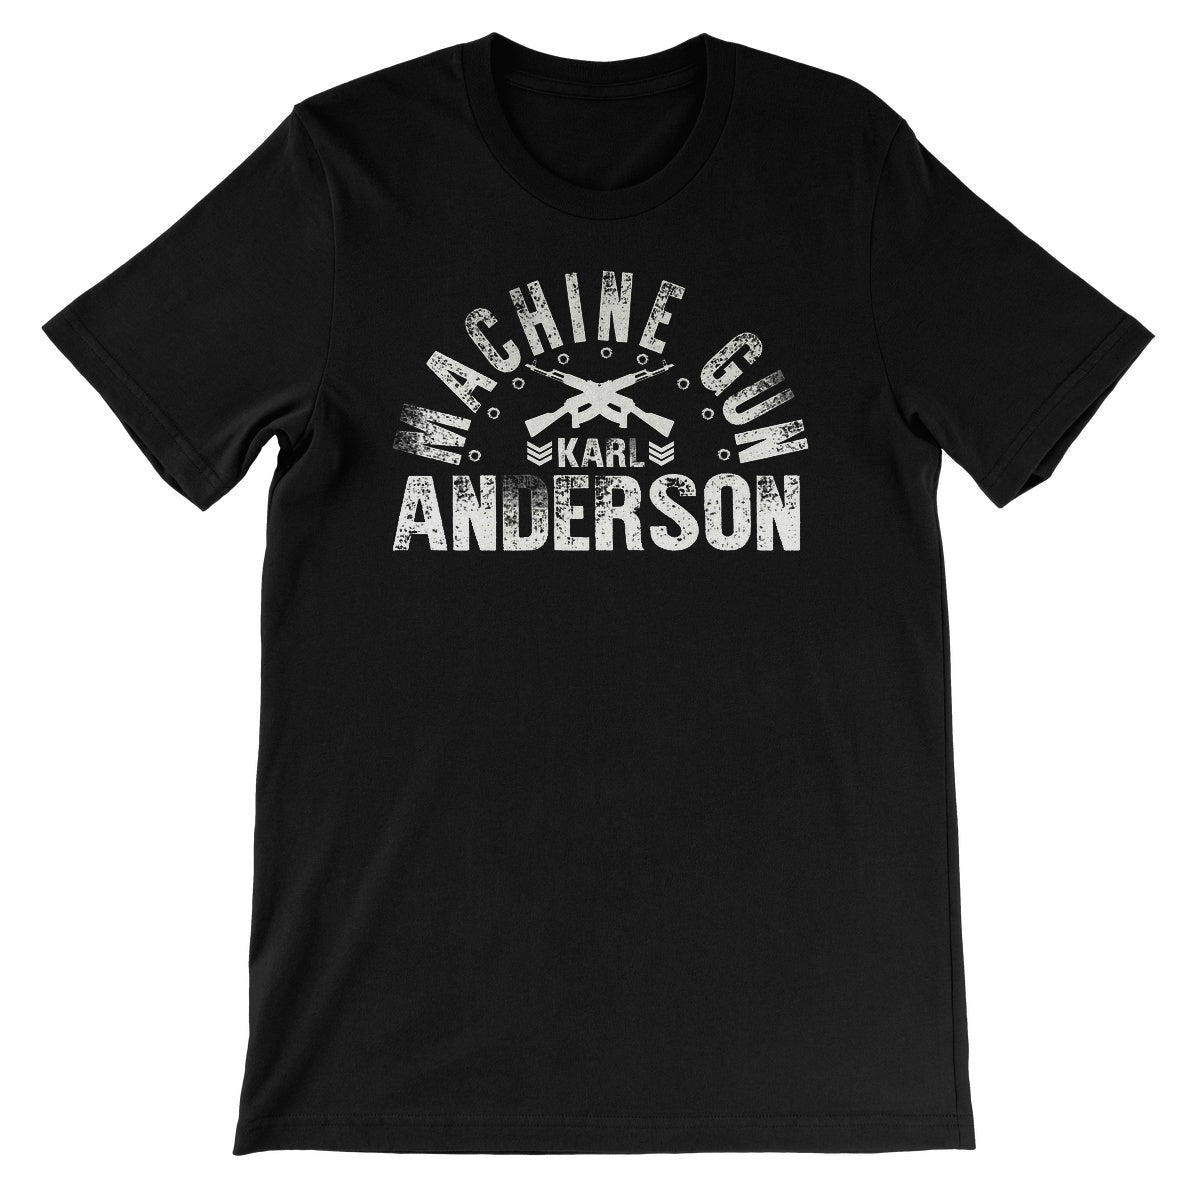 Machine Gun Karl Anderson Unisex Short Sleeve T-Shirt